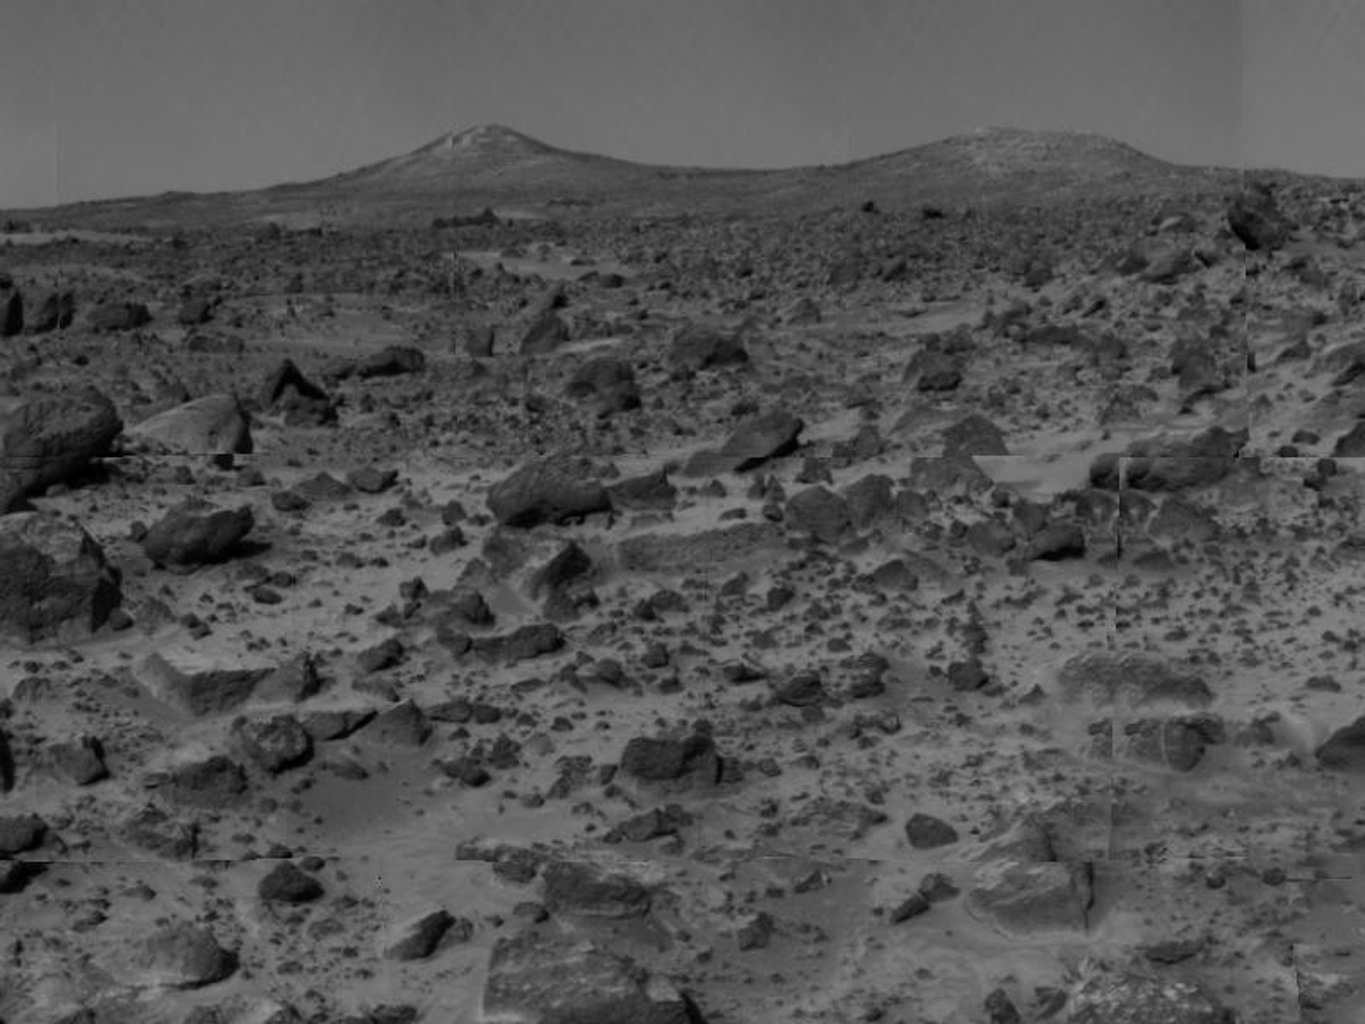 The two hills in the distance, approximately one to two kilometers away, have been dubbed the 'Twin Peaks.' The image was taken by NASA's Imager for Mars Pathfinder (IMP) after its deployment on July 7, 1997.